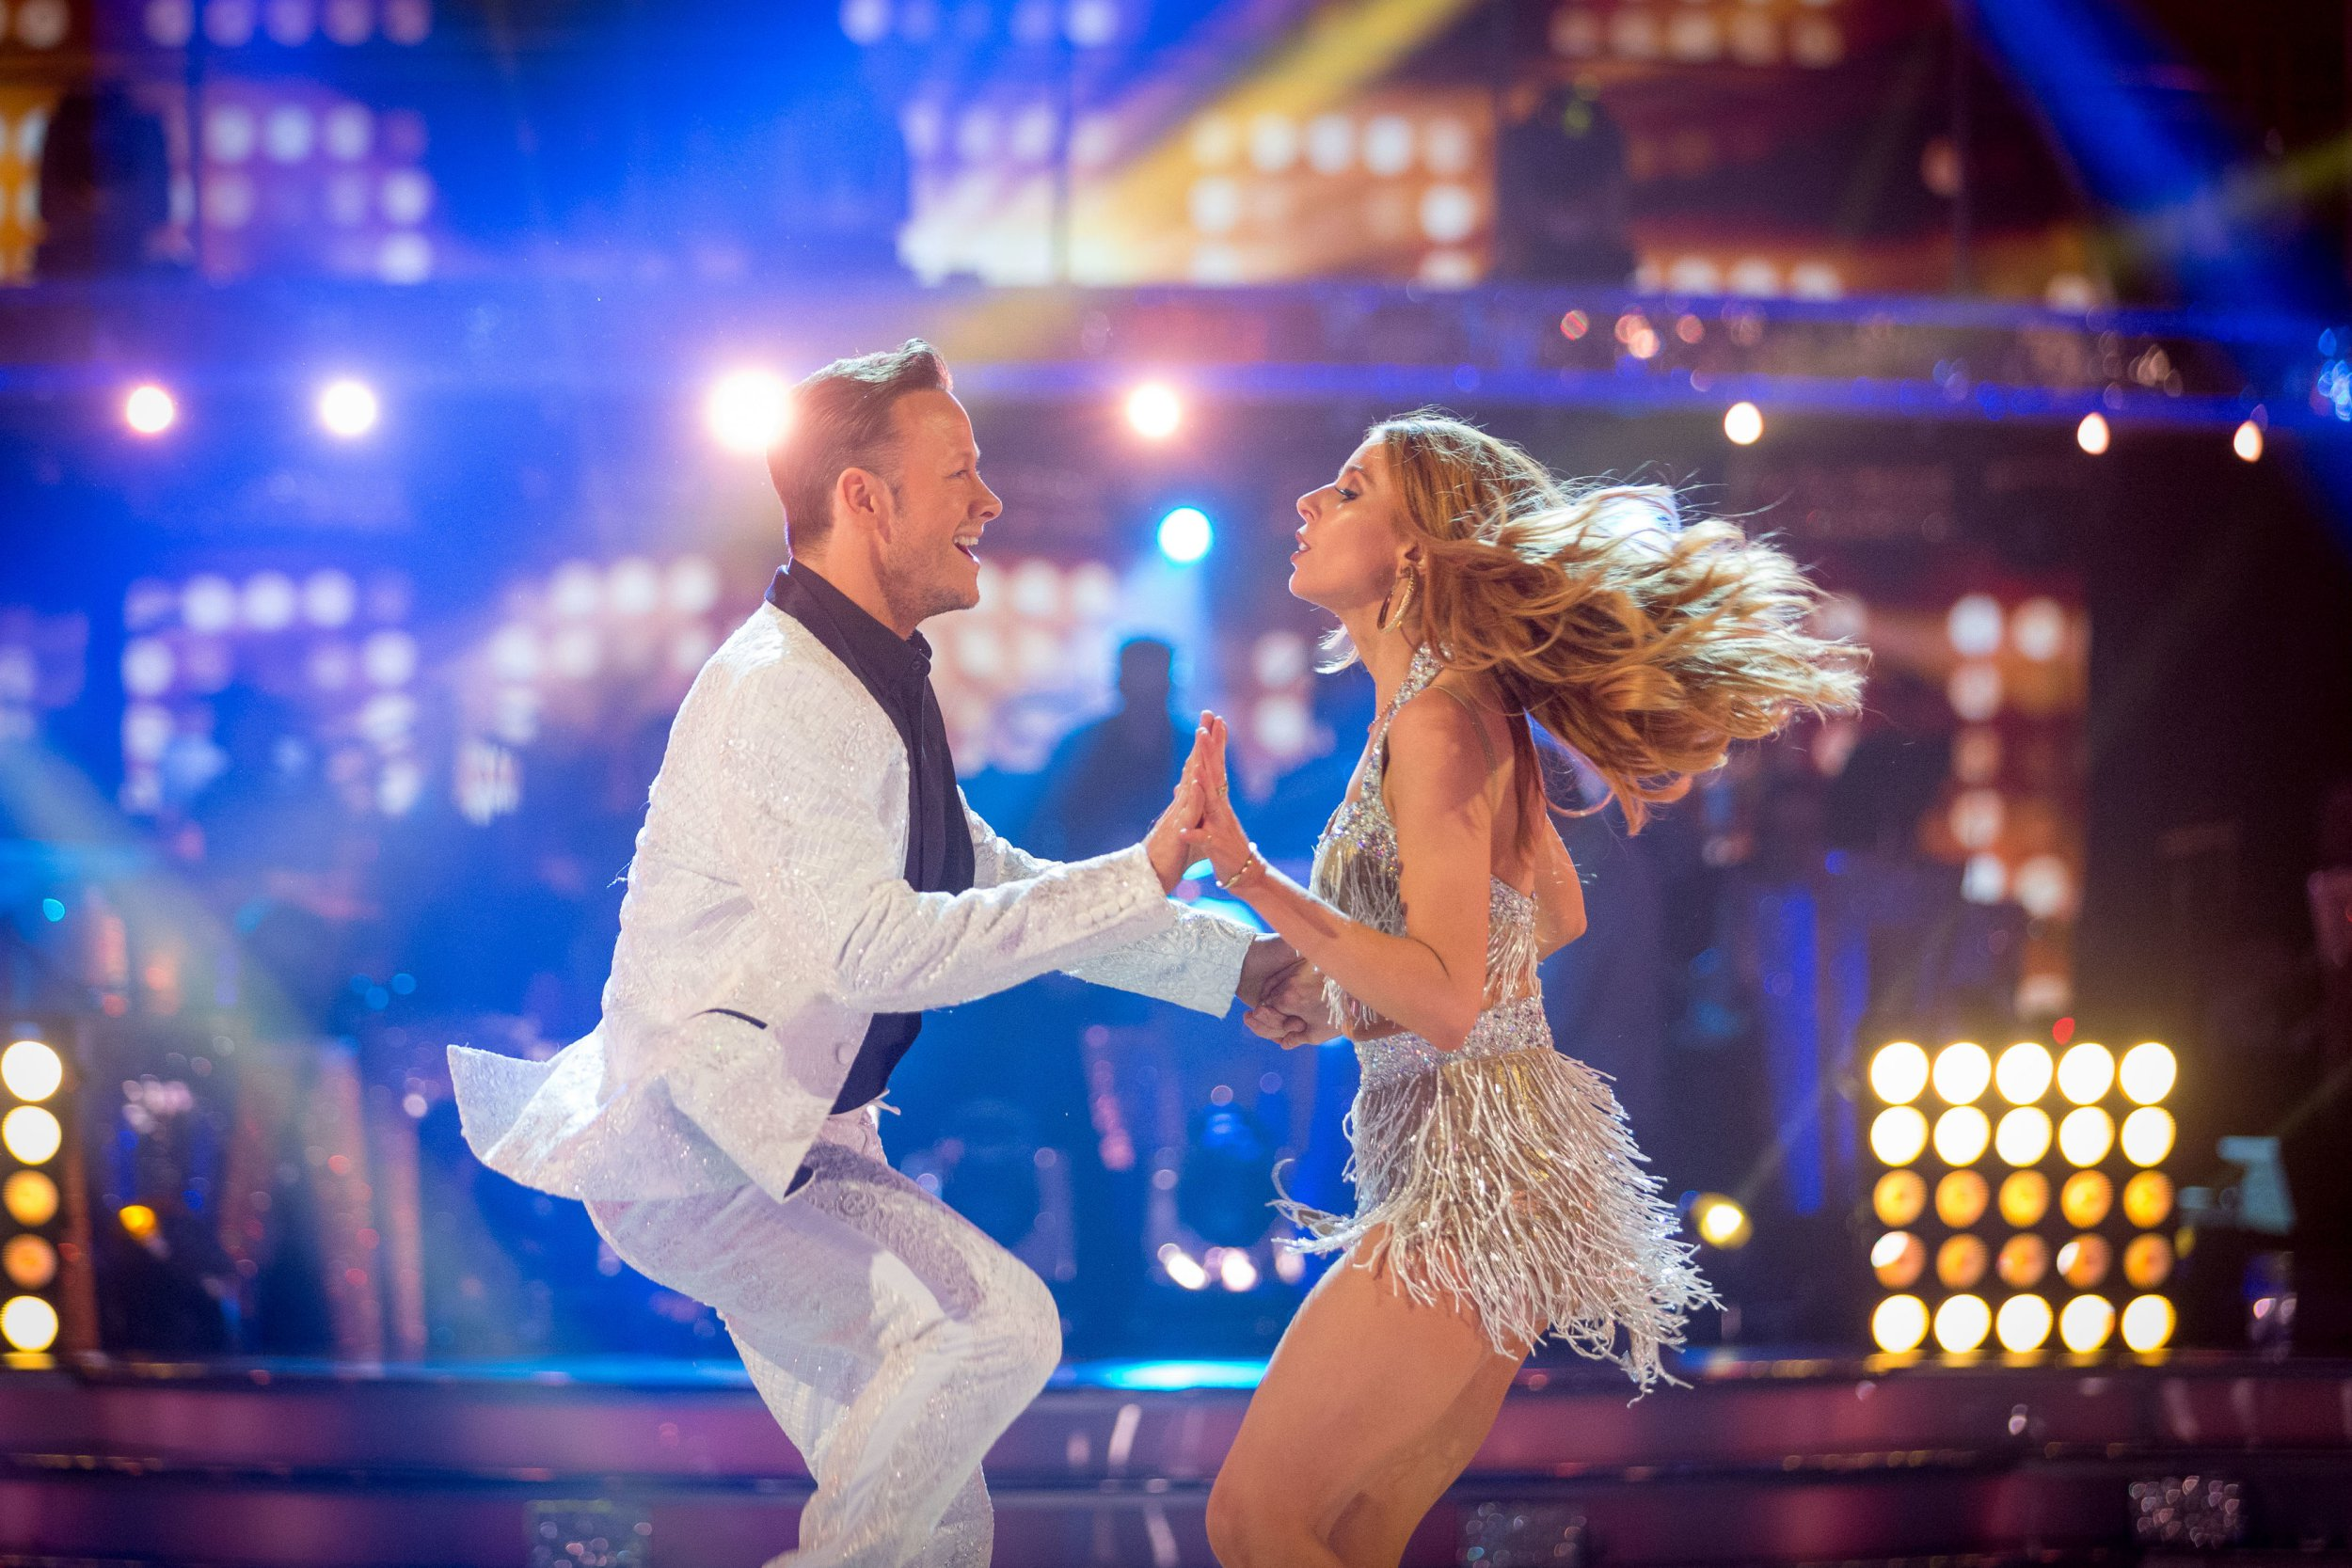 Embargoed to 2100 Saturday December 15 For use in UK, Ireland or Benelux countries only Undated BBC handout photo of Kevin Clifton and Stacey Dooley taking part in a dress rehearsal ahead of Saturday's Strictly Come Dancing live final on BBC One. PRESS ASSOCIATION Photo. Issue date: Saturday December 15, 2018. See PA story SHOWBIZ Strictly. Photo credit should read: Guy Levy/BBC/PA Wire NOTE TO EDITORS: Not for use more than 21 days after issue. You may use this picture without charge only for the purpose of publicising or reporting on current BBC programming, personnel or other BBC output or activity within 21 days of issue. Any use after that time MUST be cleared through BBC Picture Publicity. Please credit the image to the BBC and any named photographer or independent programme maker, as described in the caption.